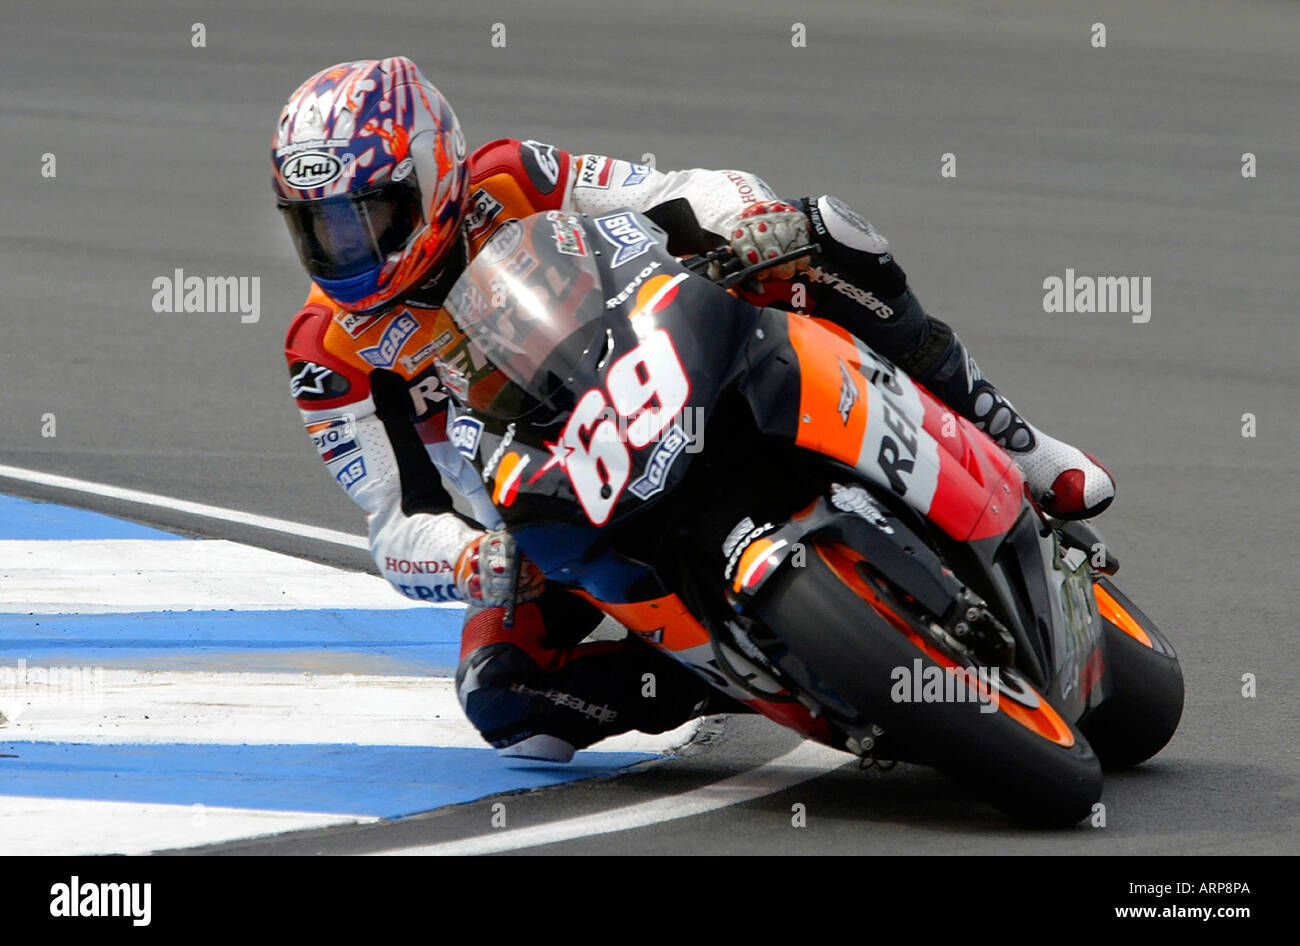 Nicky Hayden High Resolution Stock Photography And Images Alamy